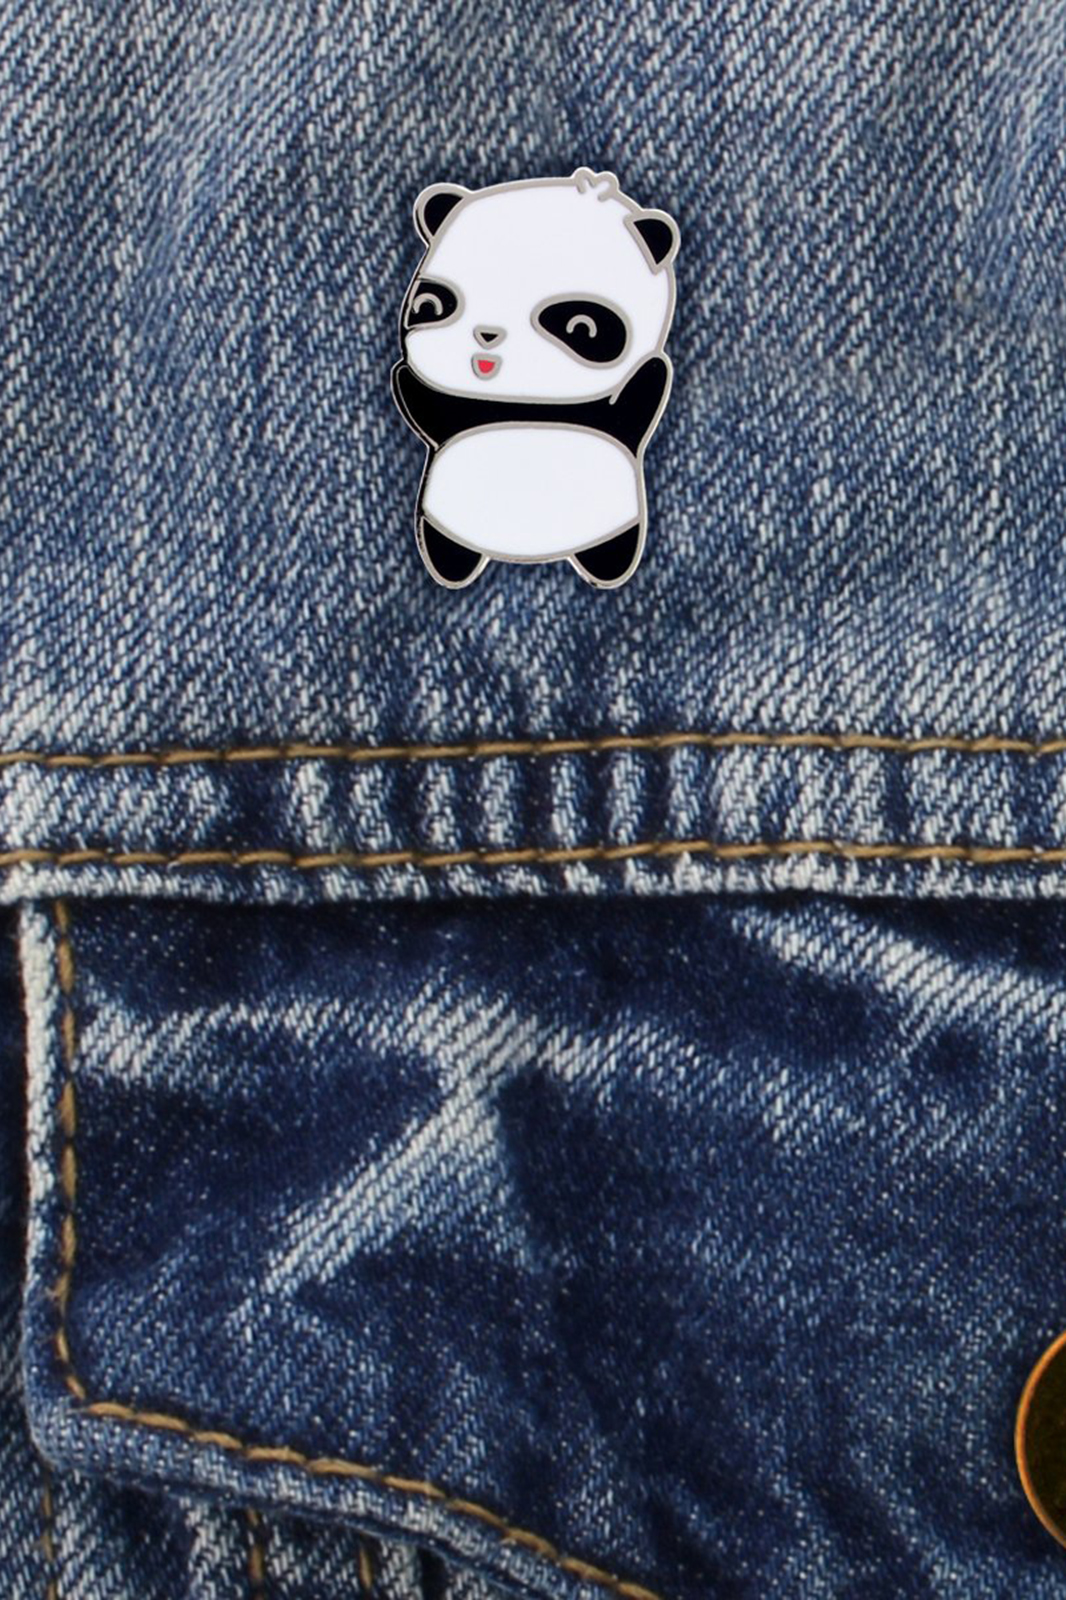 Kawaii Panda Enamel Pin